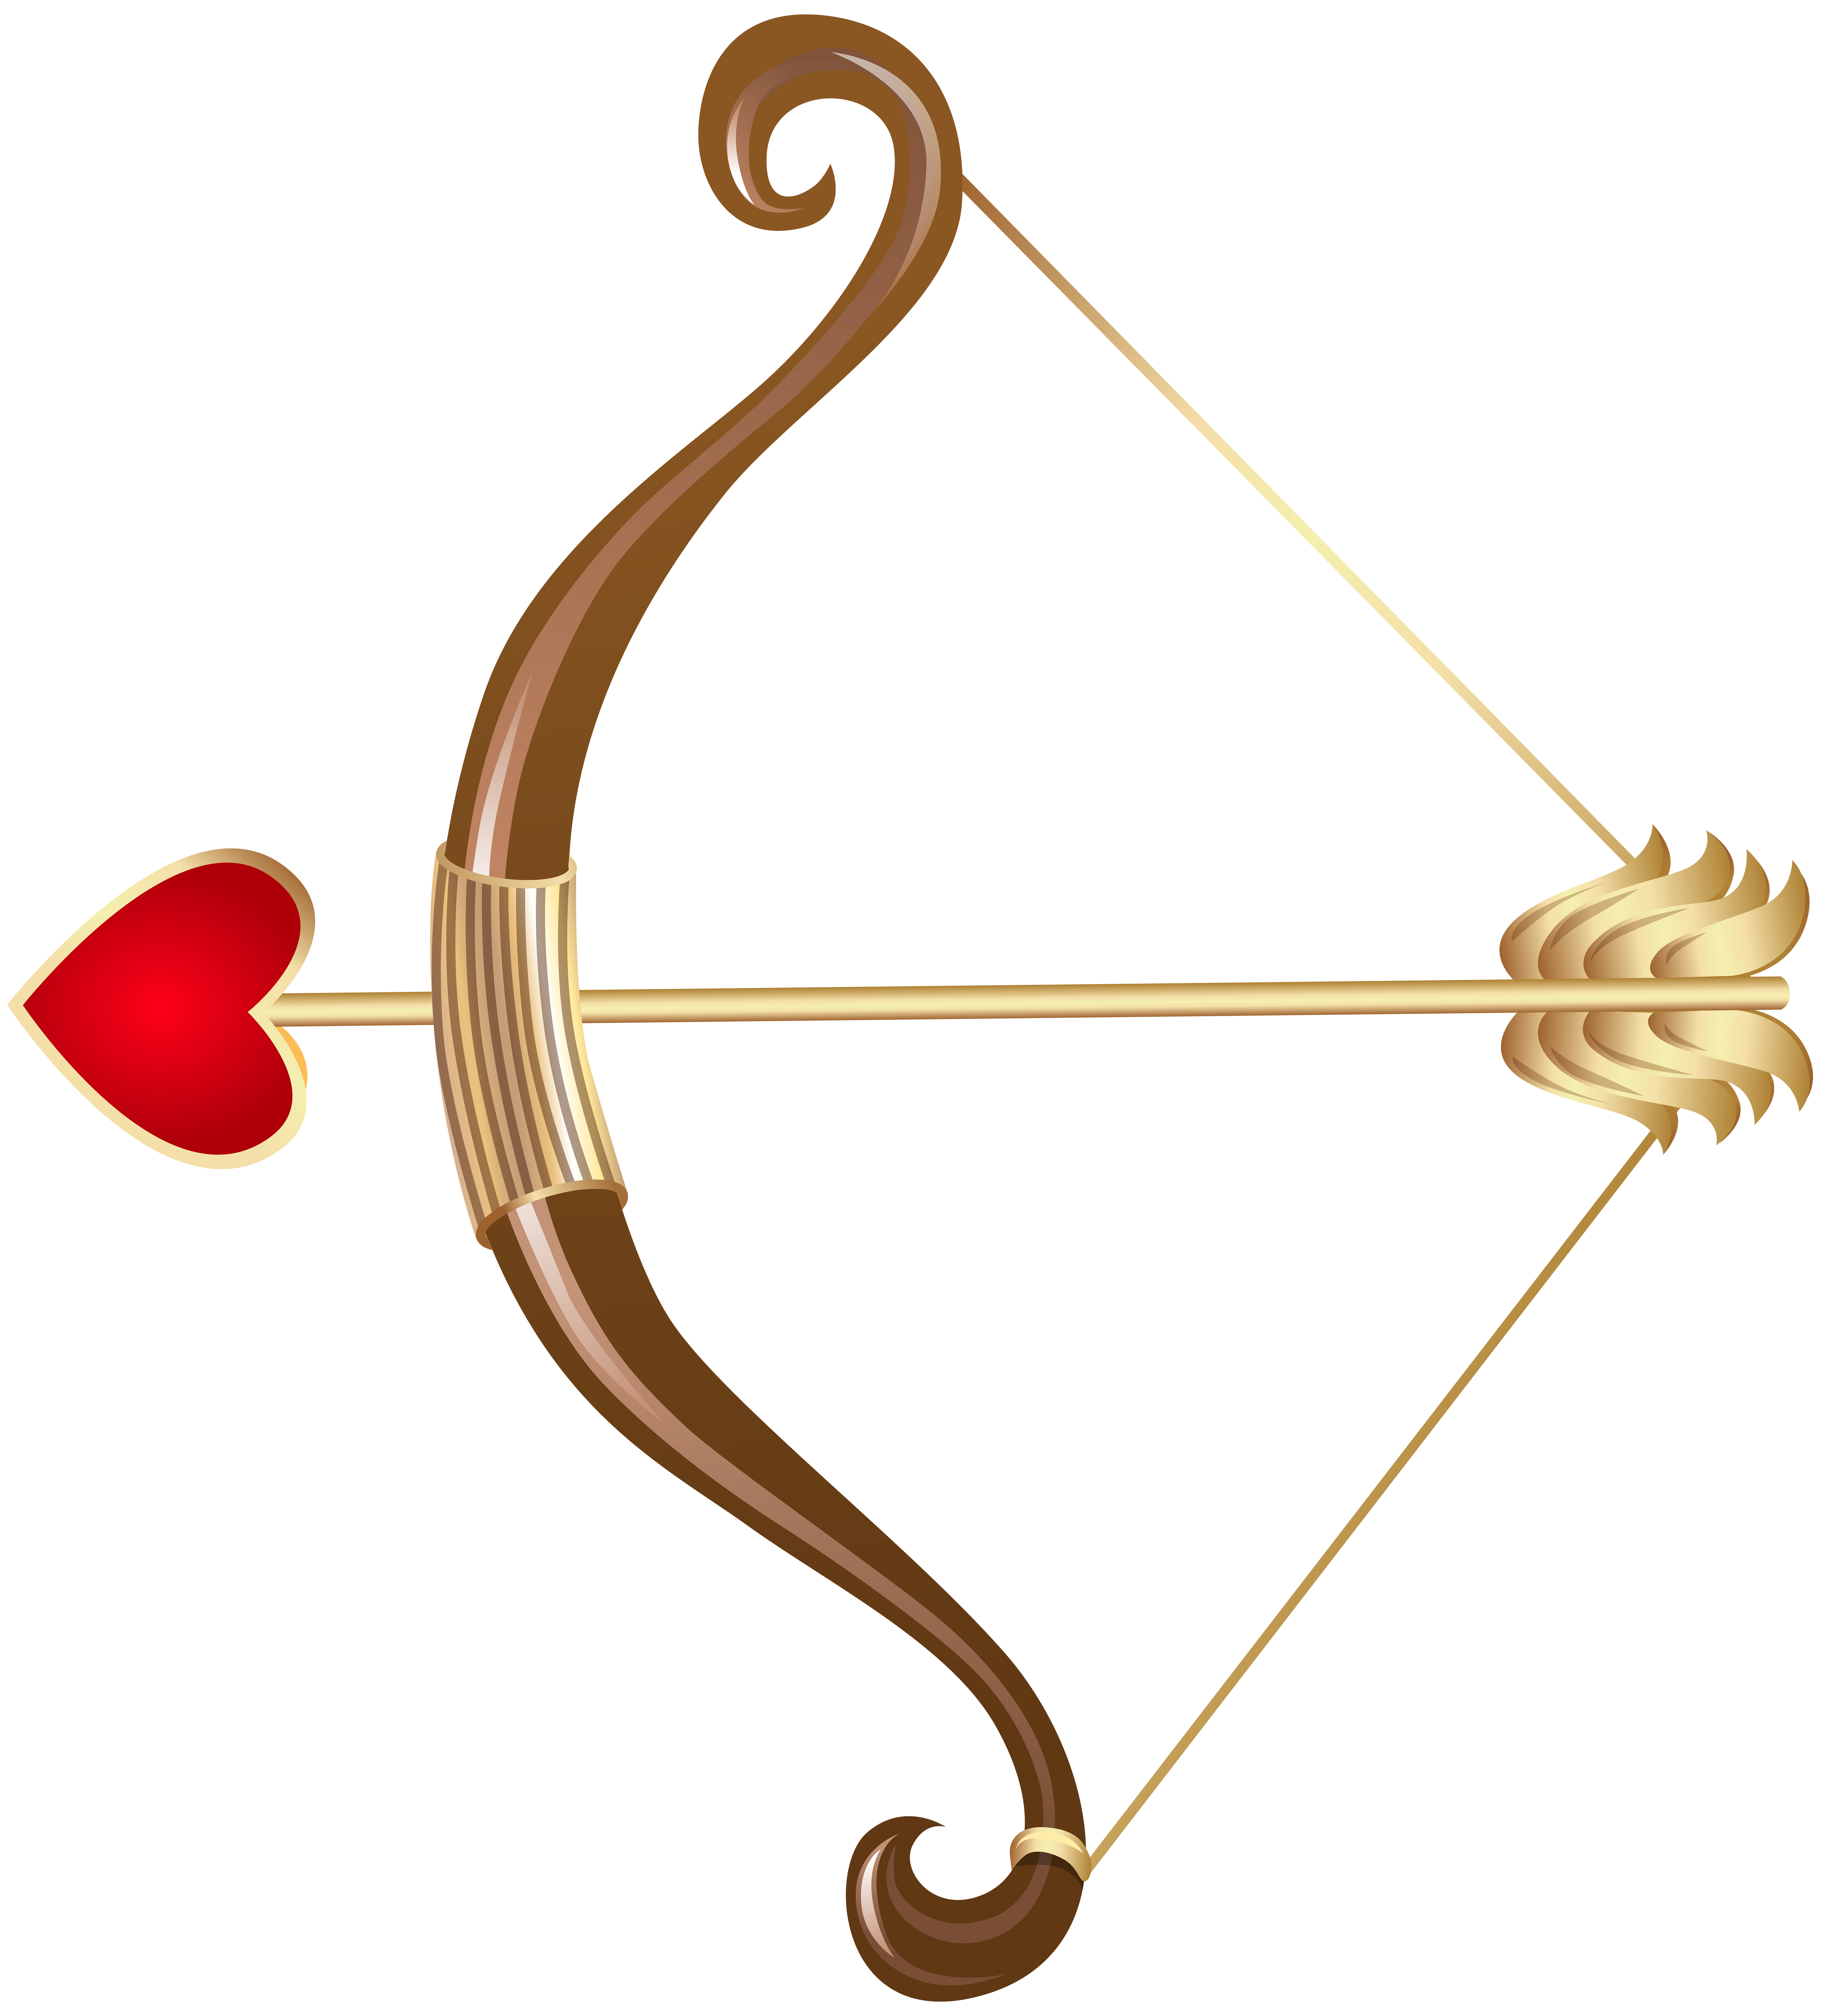 Cupid bow and arrow png. Transparent clip art gallery